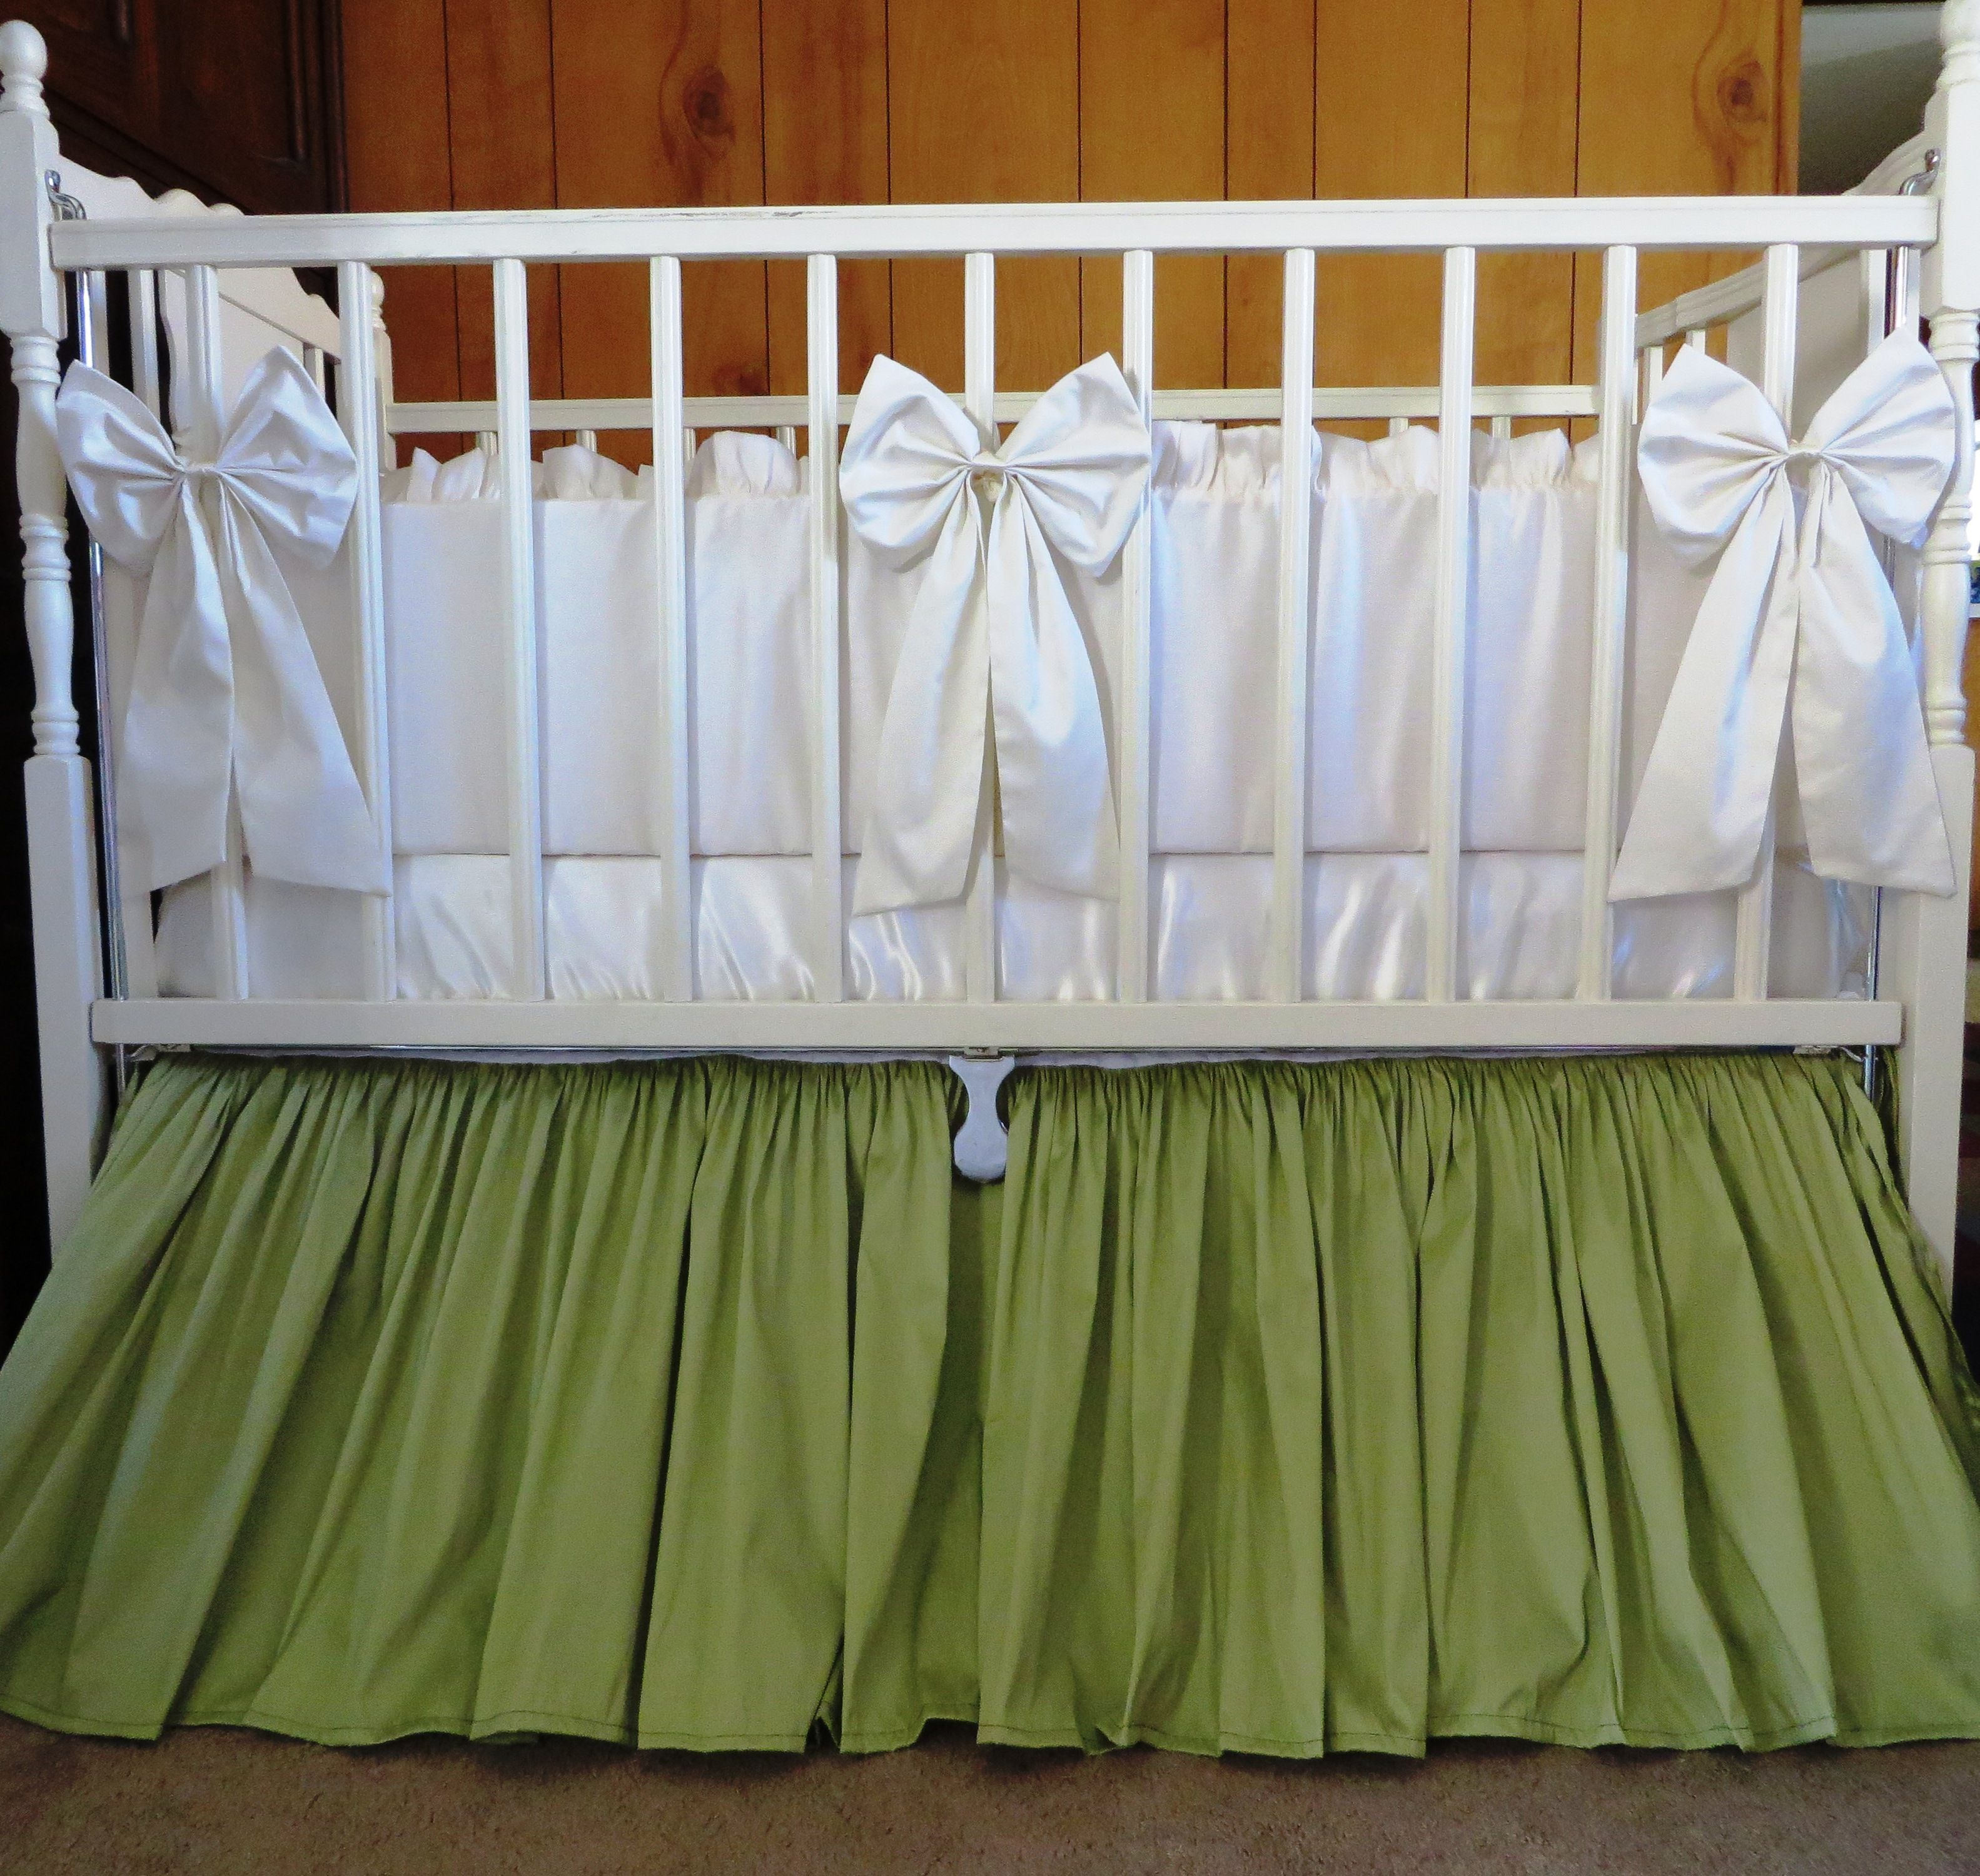 baby solpool top size gold in luxury white info chevron dots of standard polka solid shell diaper polyester design boho how peanut insects dust to red girl full tulle skirt a yellow linen color dinosaur bag with furniture cribs interior be the stacker crib